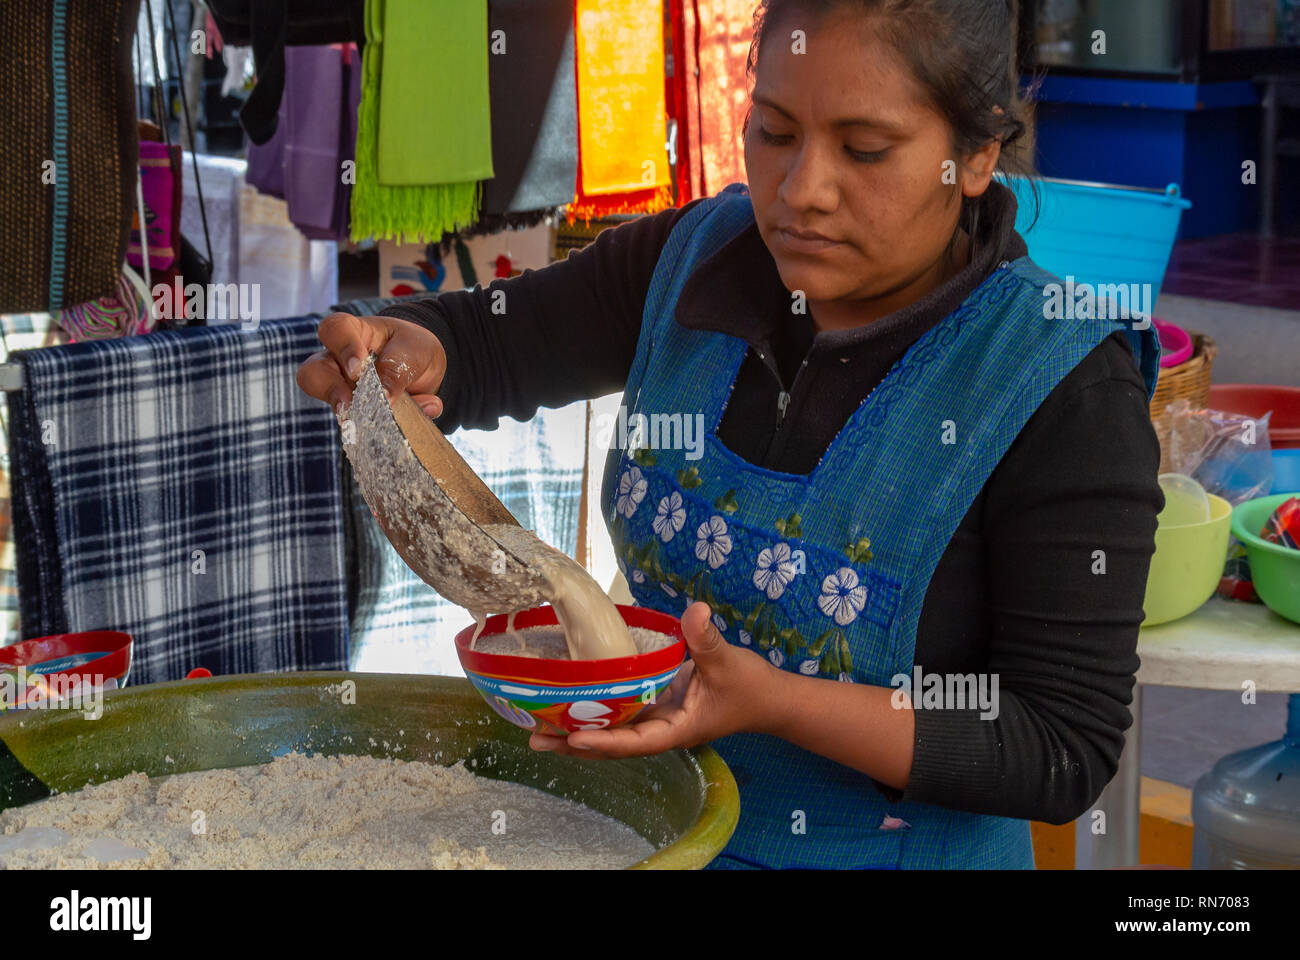 tejate-traditional-drink-based-on-cacao-and-corn-for-god-at-tlacolula-market-oaxaca-mexico-RN7083.jpg